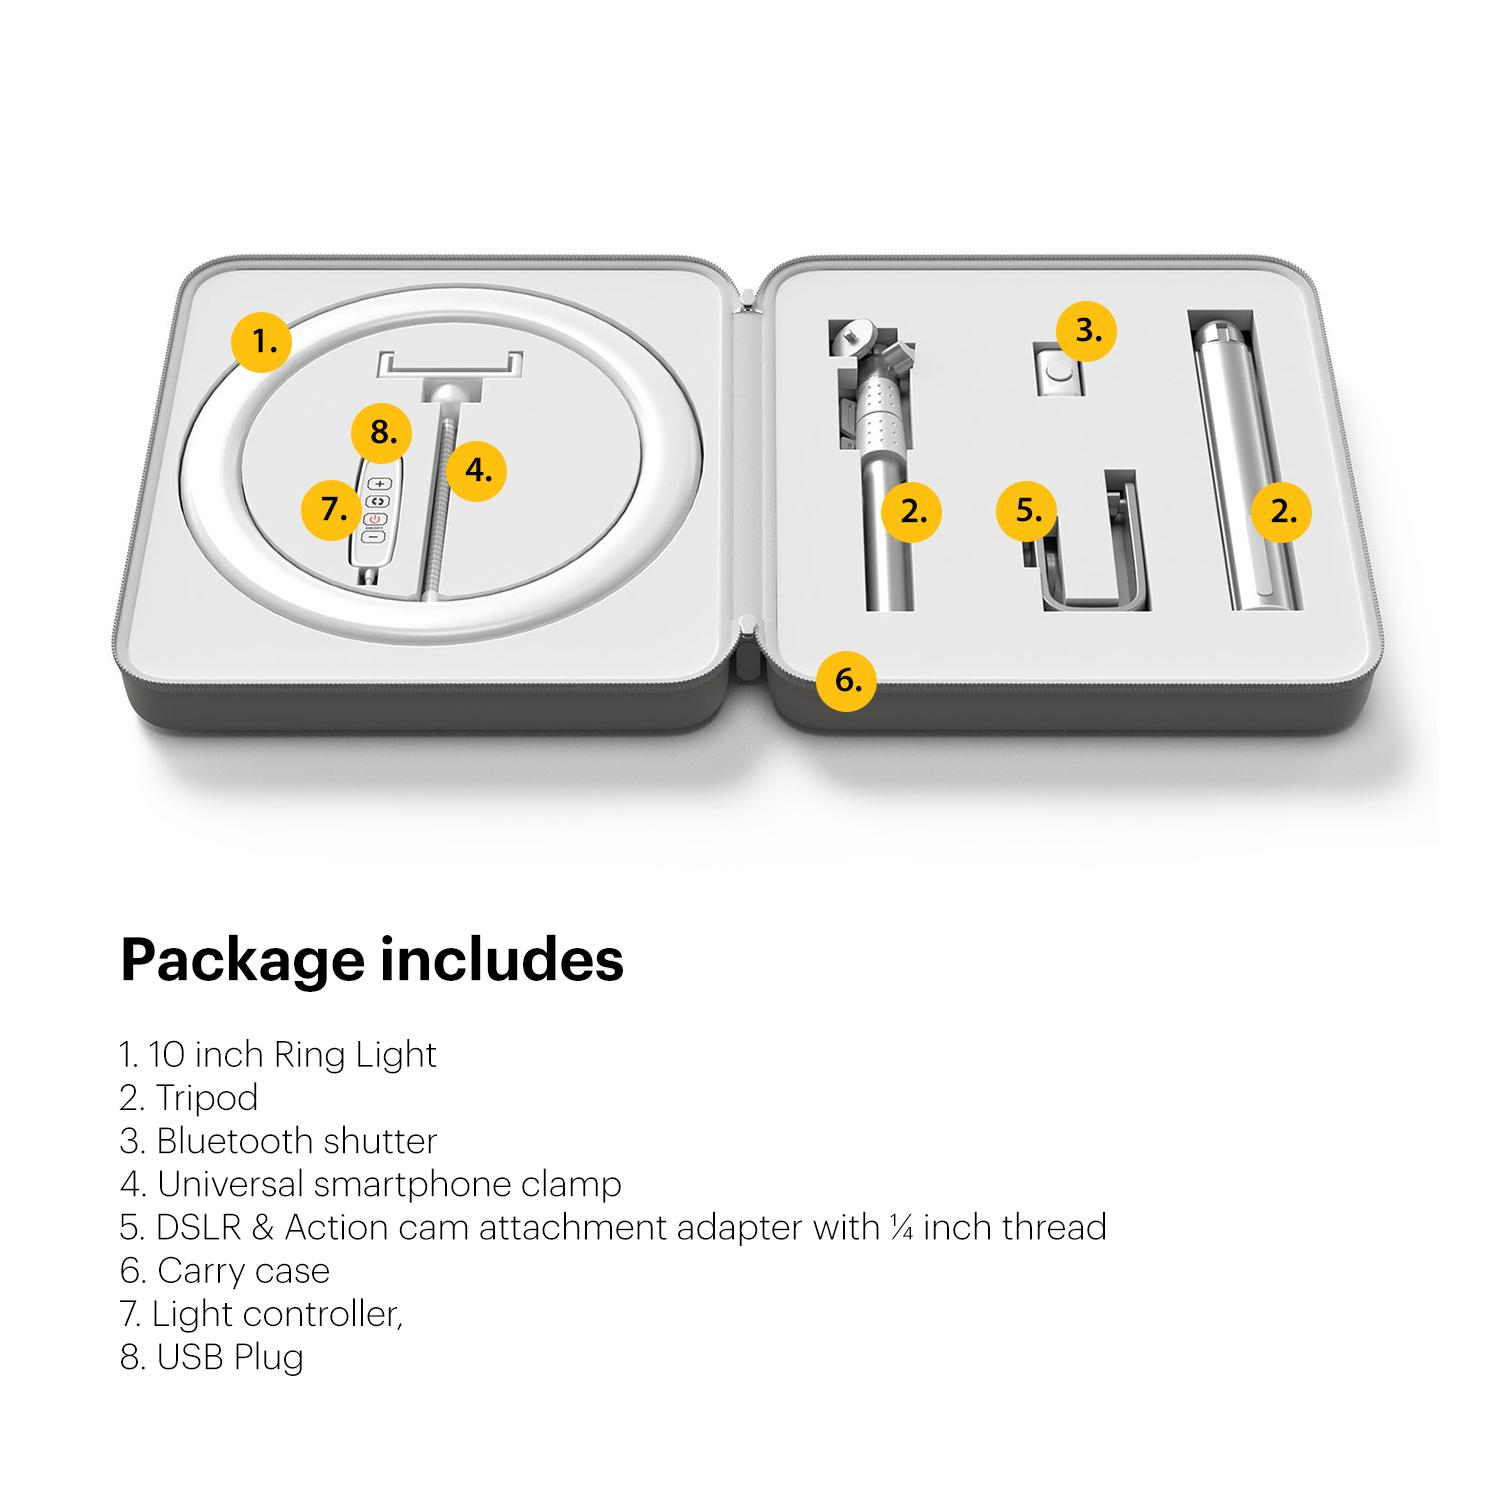 Ring light package includes